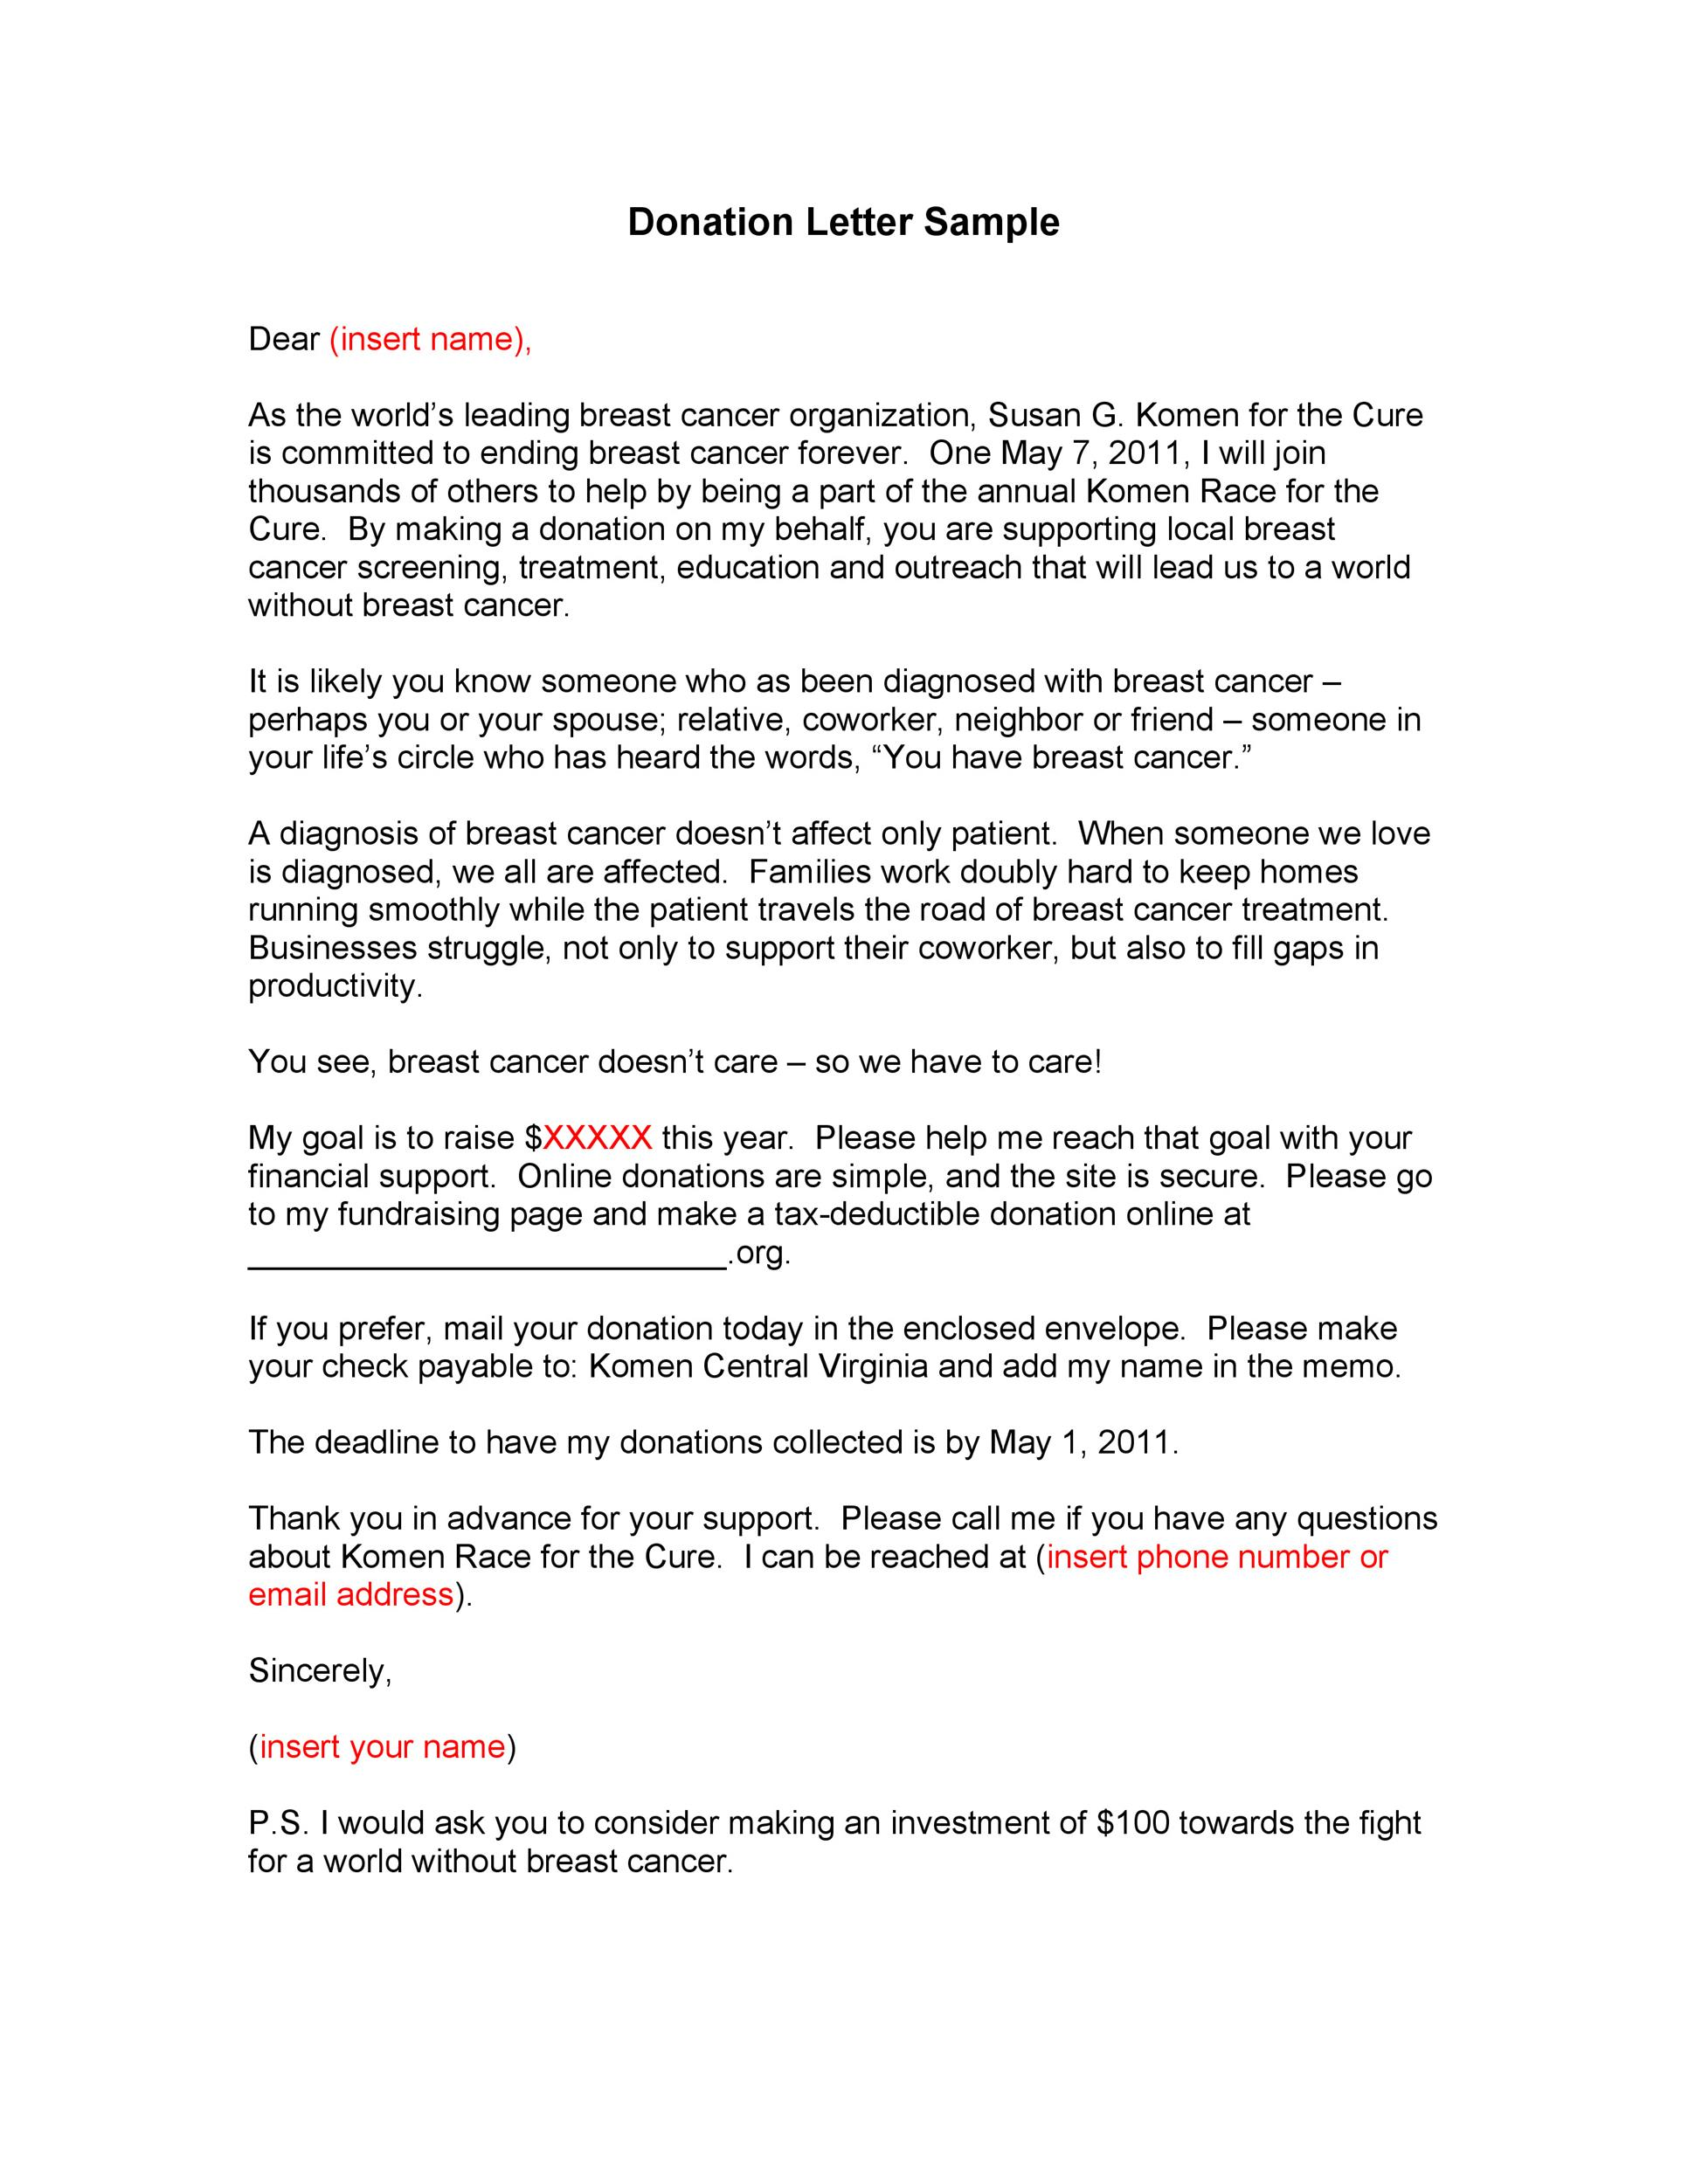 Request Letter Sample Sample Letter For Requesting Funding Re